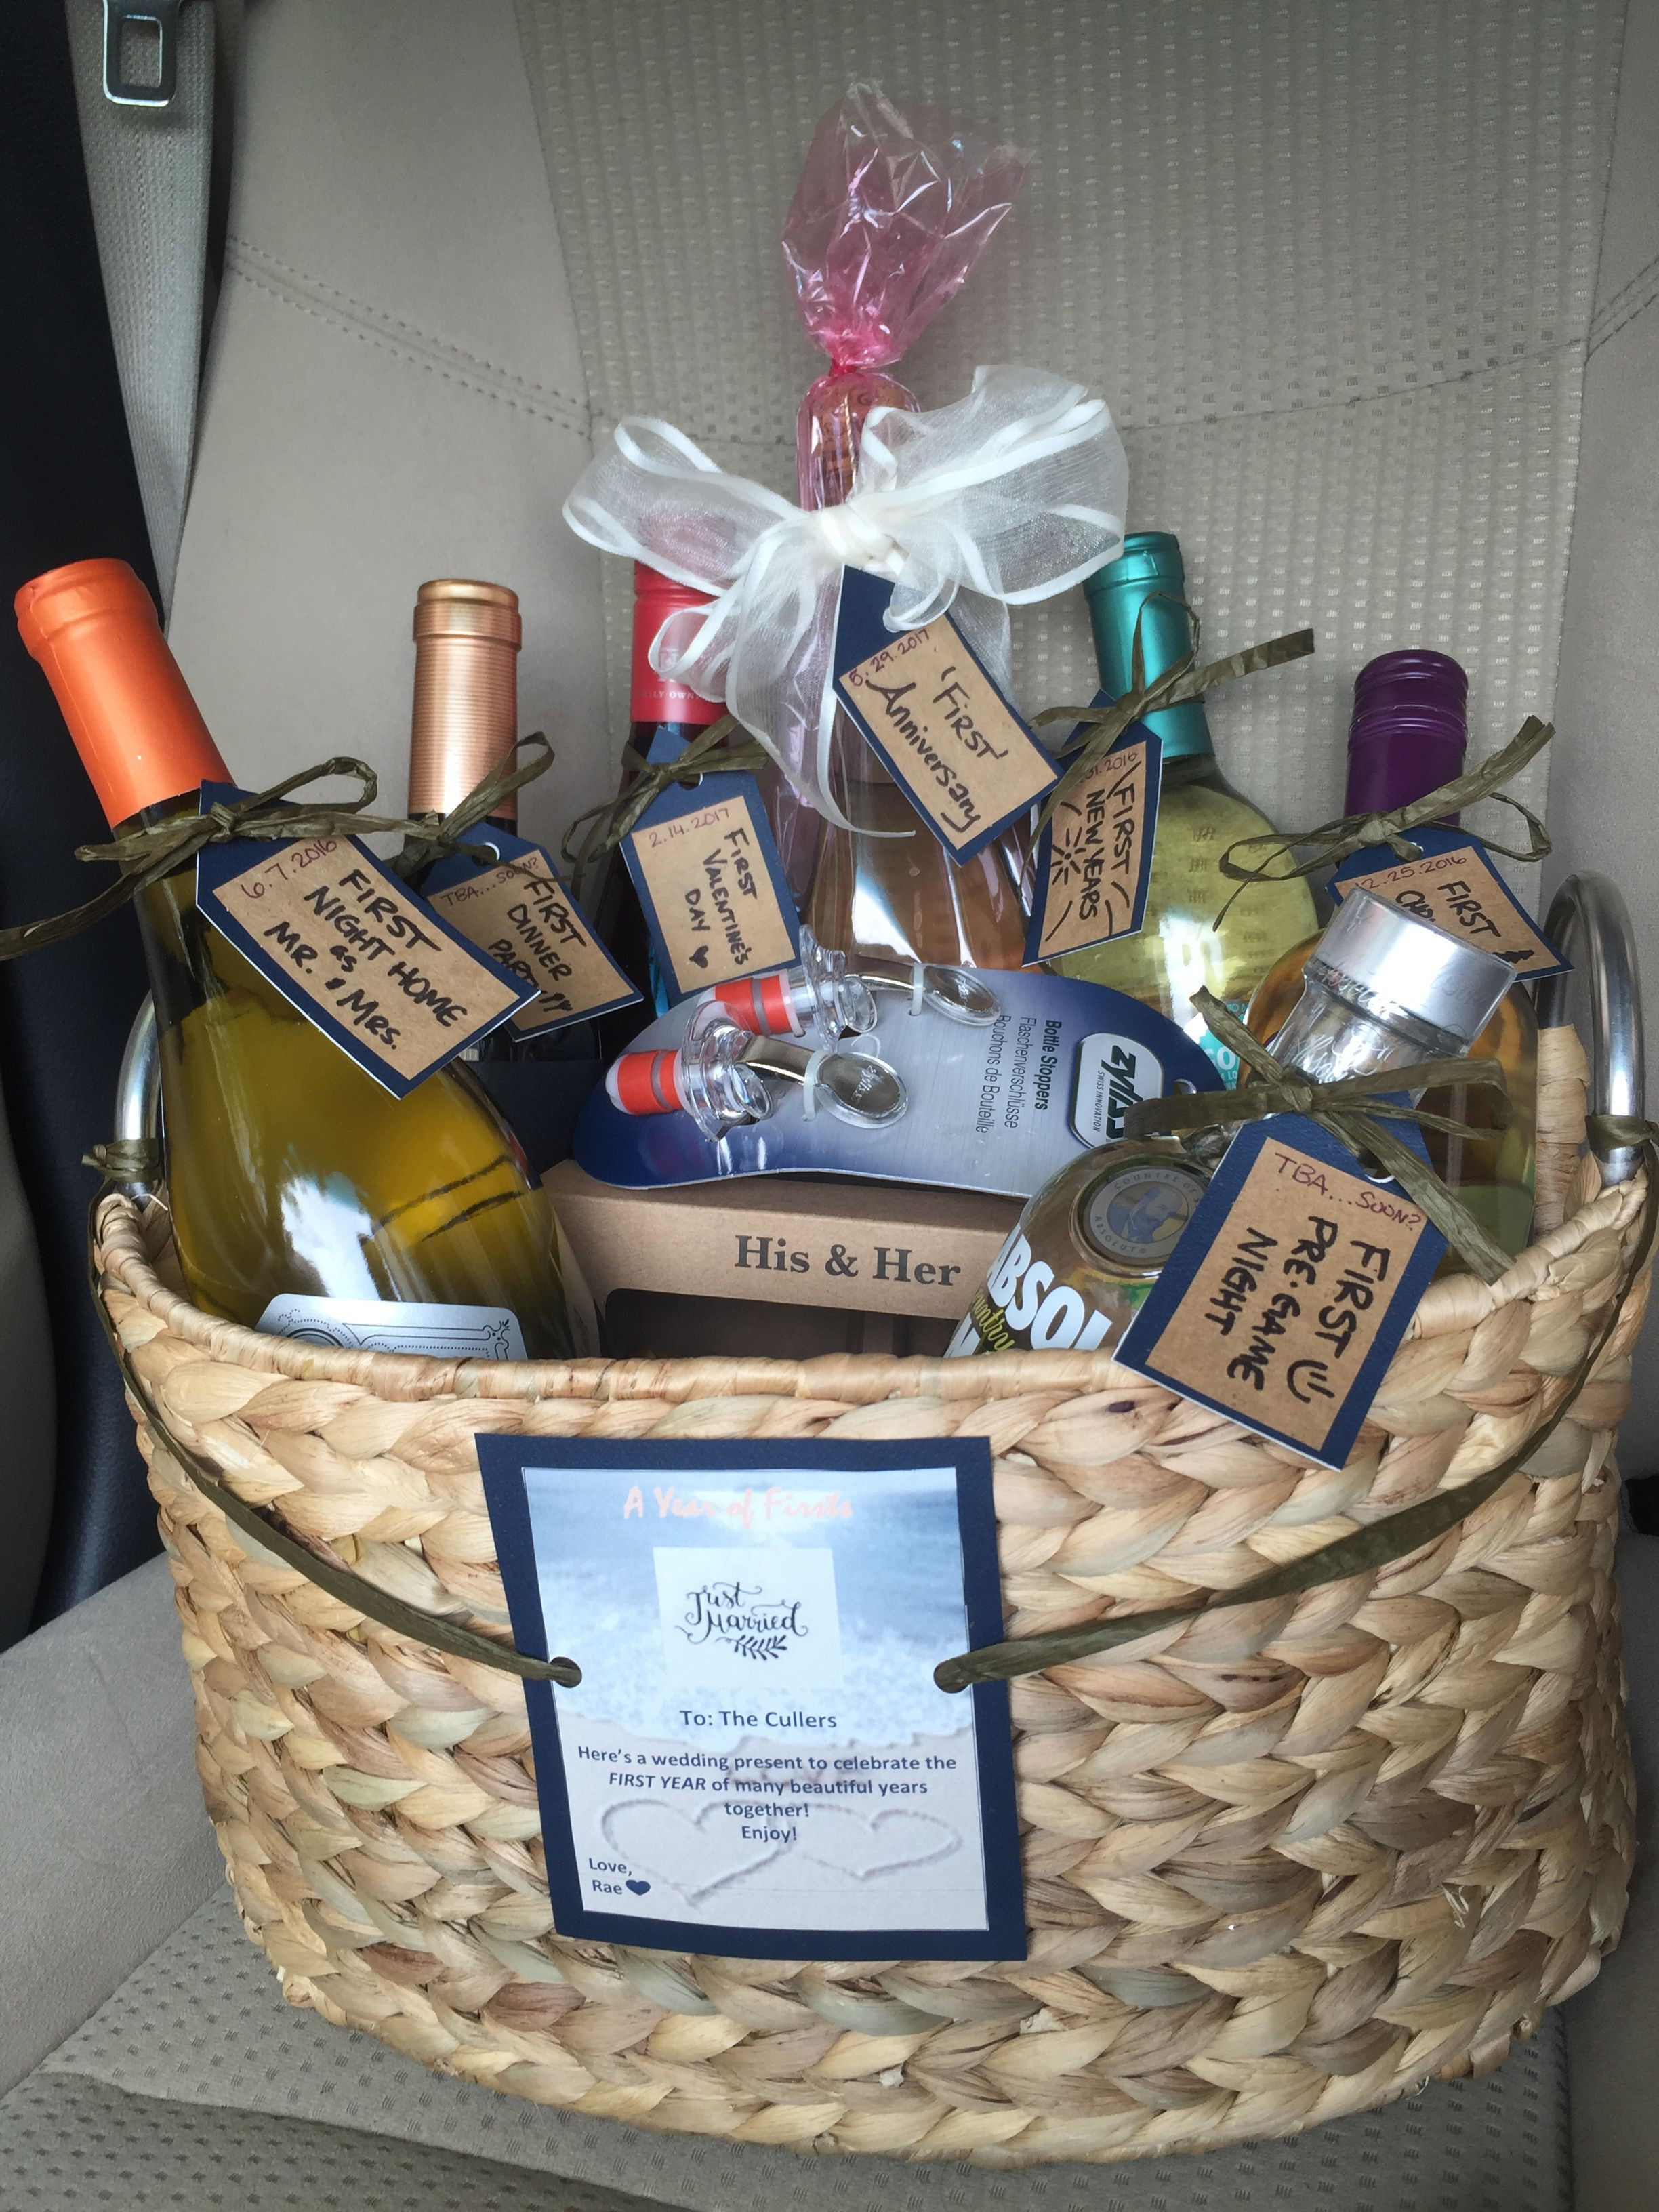 Best ideas about Housewarming Gift Ideas For Couple . Save or Pin A year of firsts The BEST and easiest wedding present for Now.